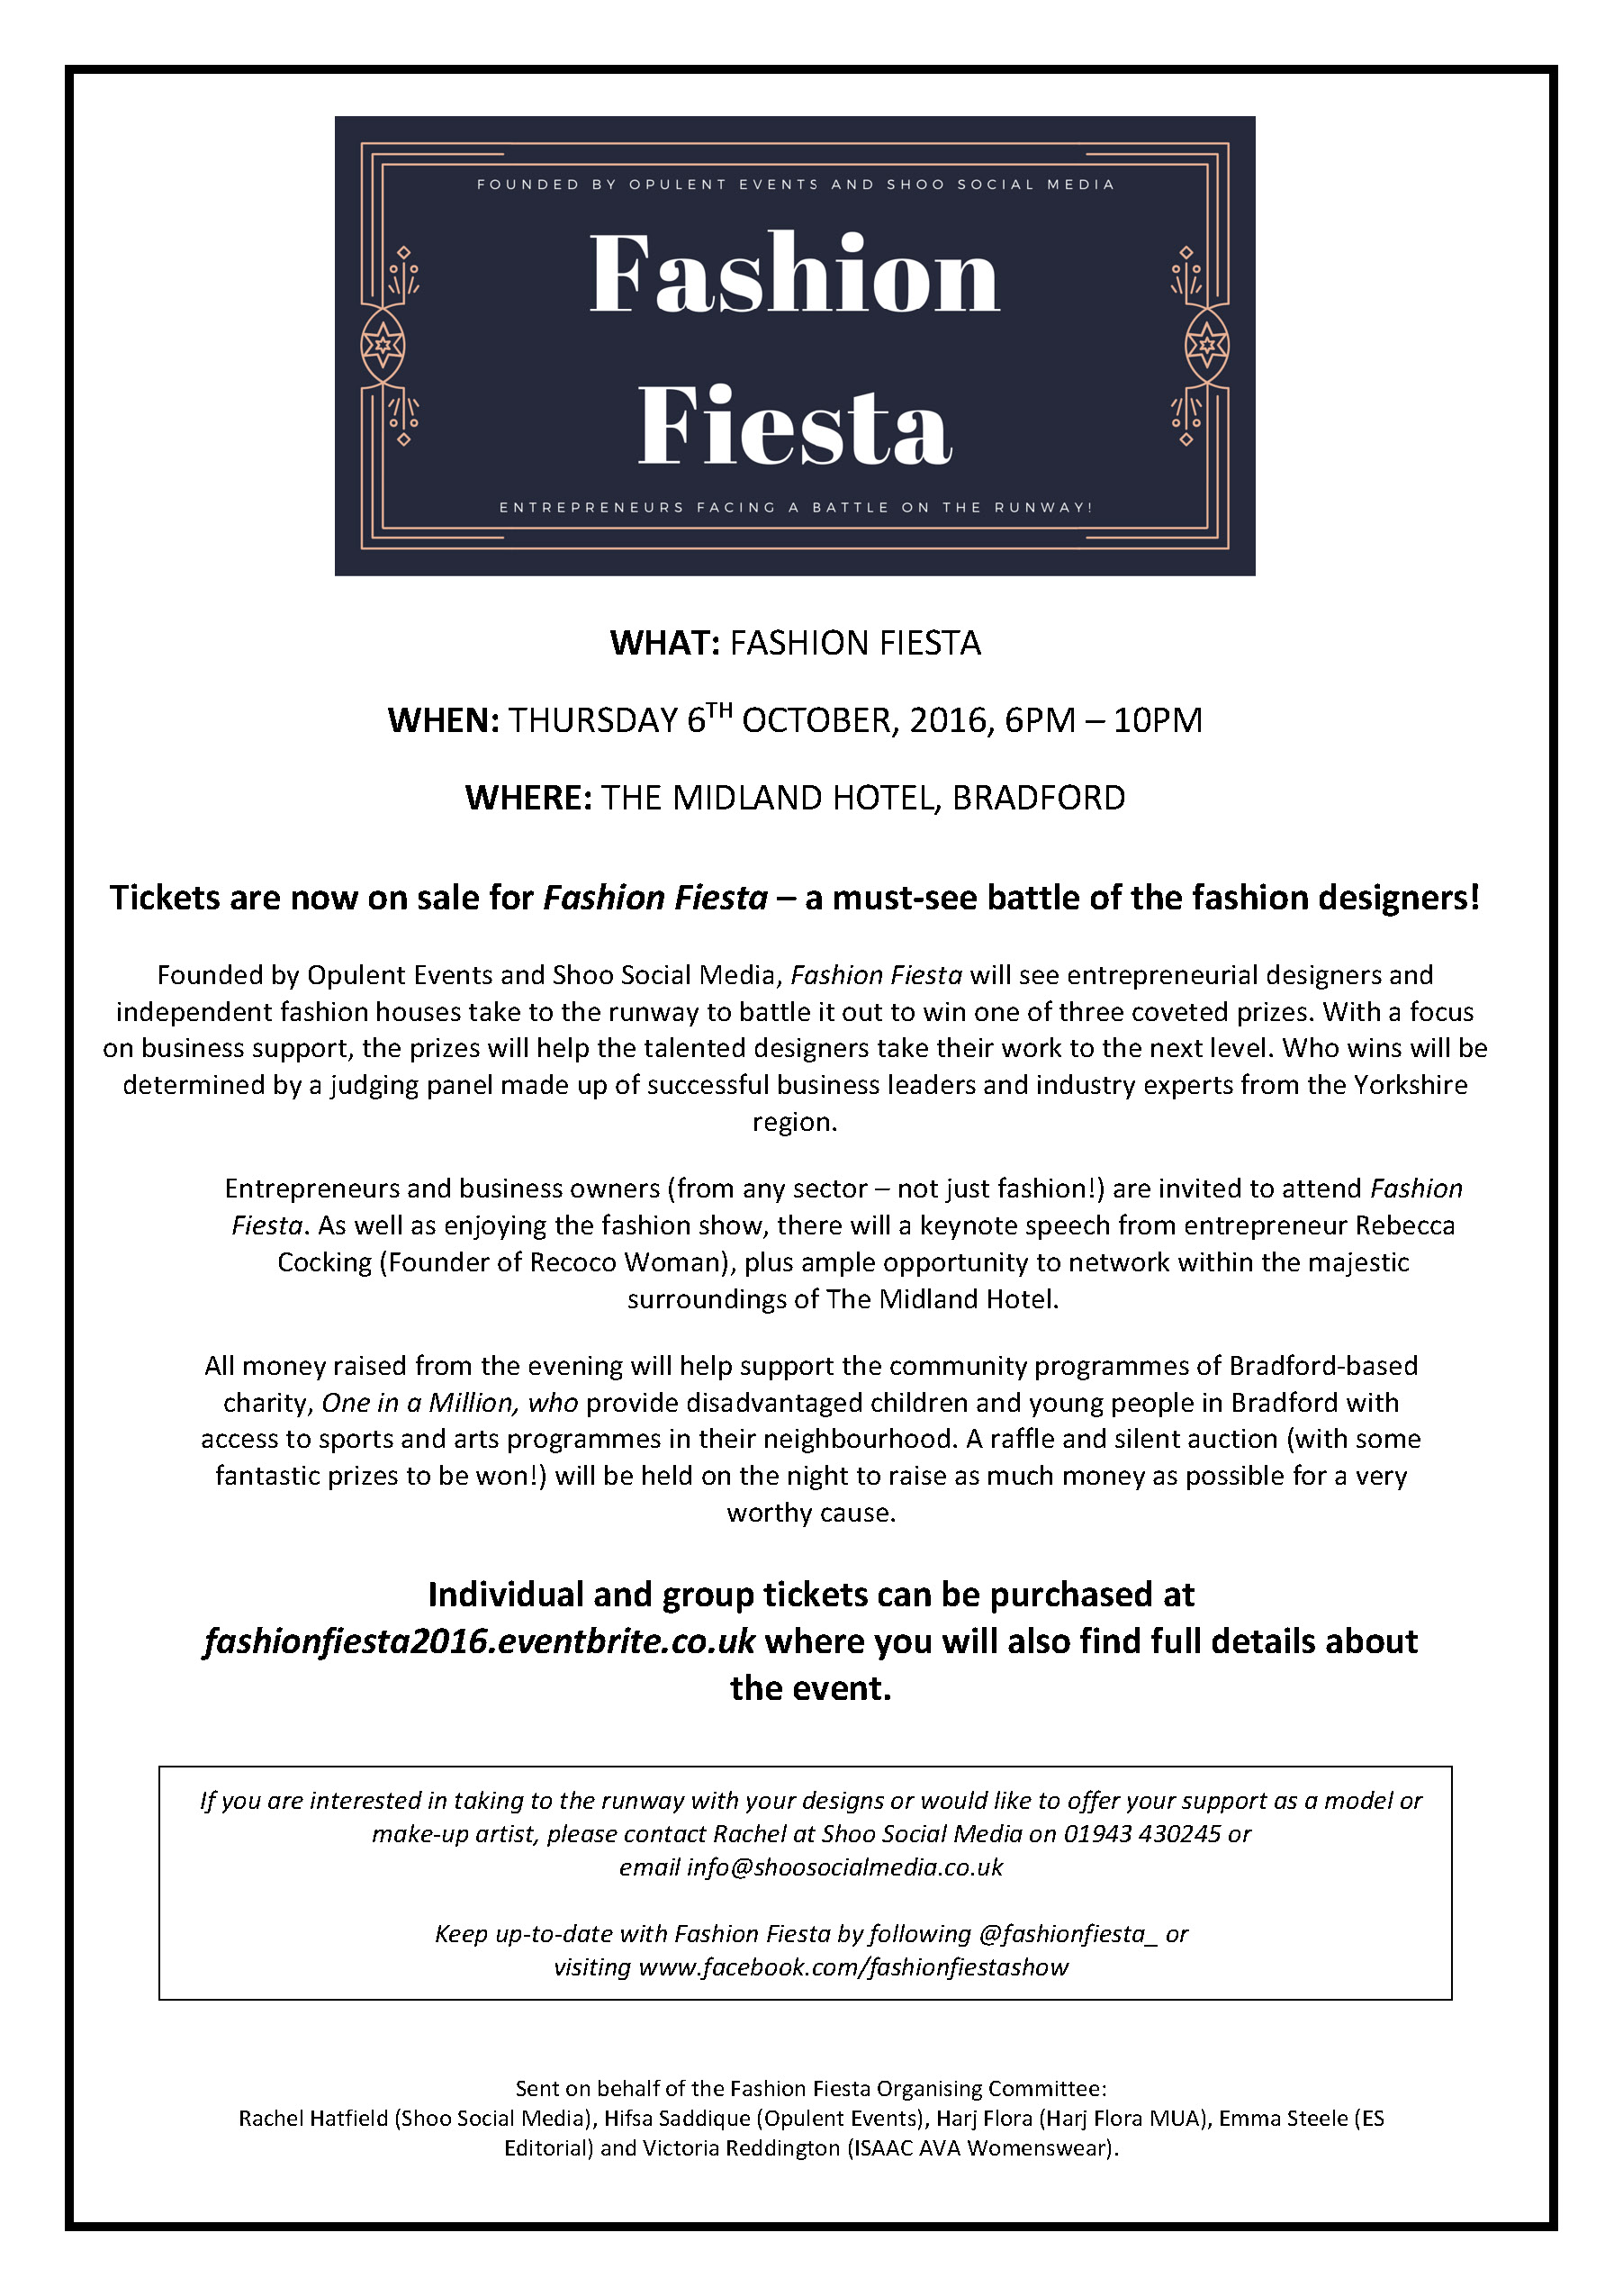 fashion-fiesta-press-release-1